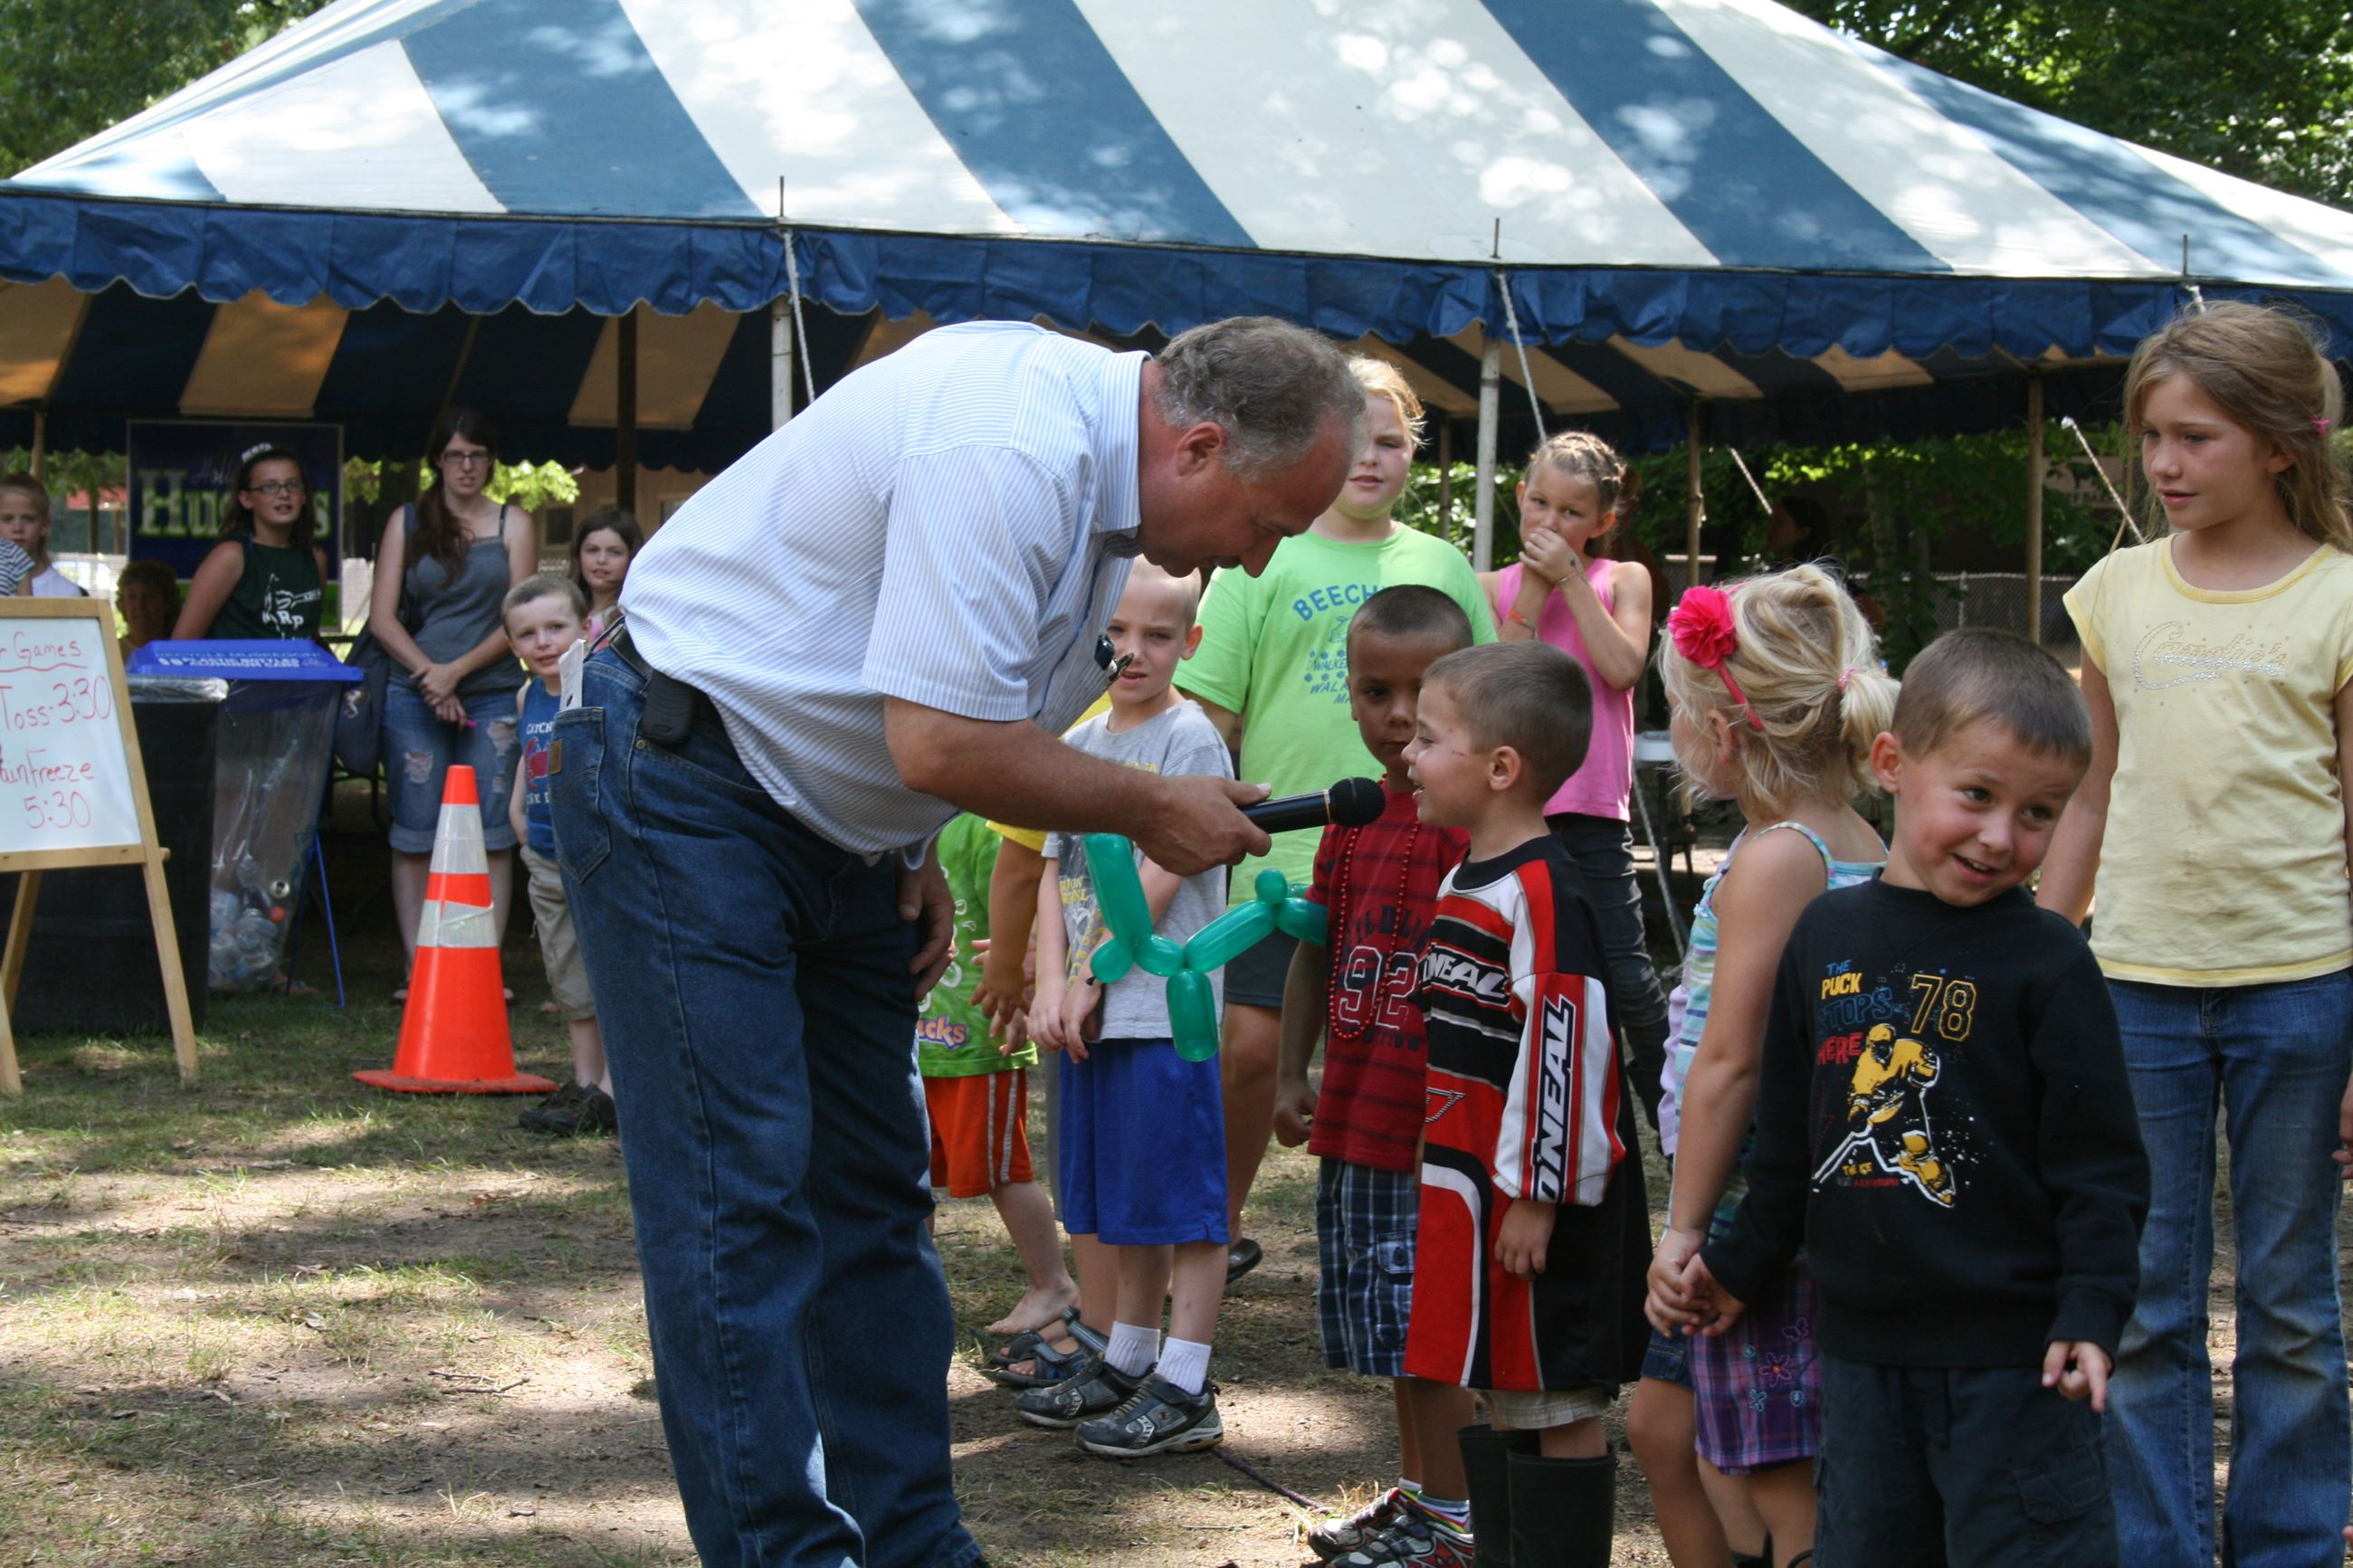 Image of older man talking with children at the fair